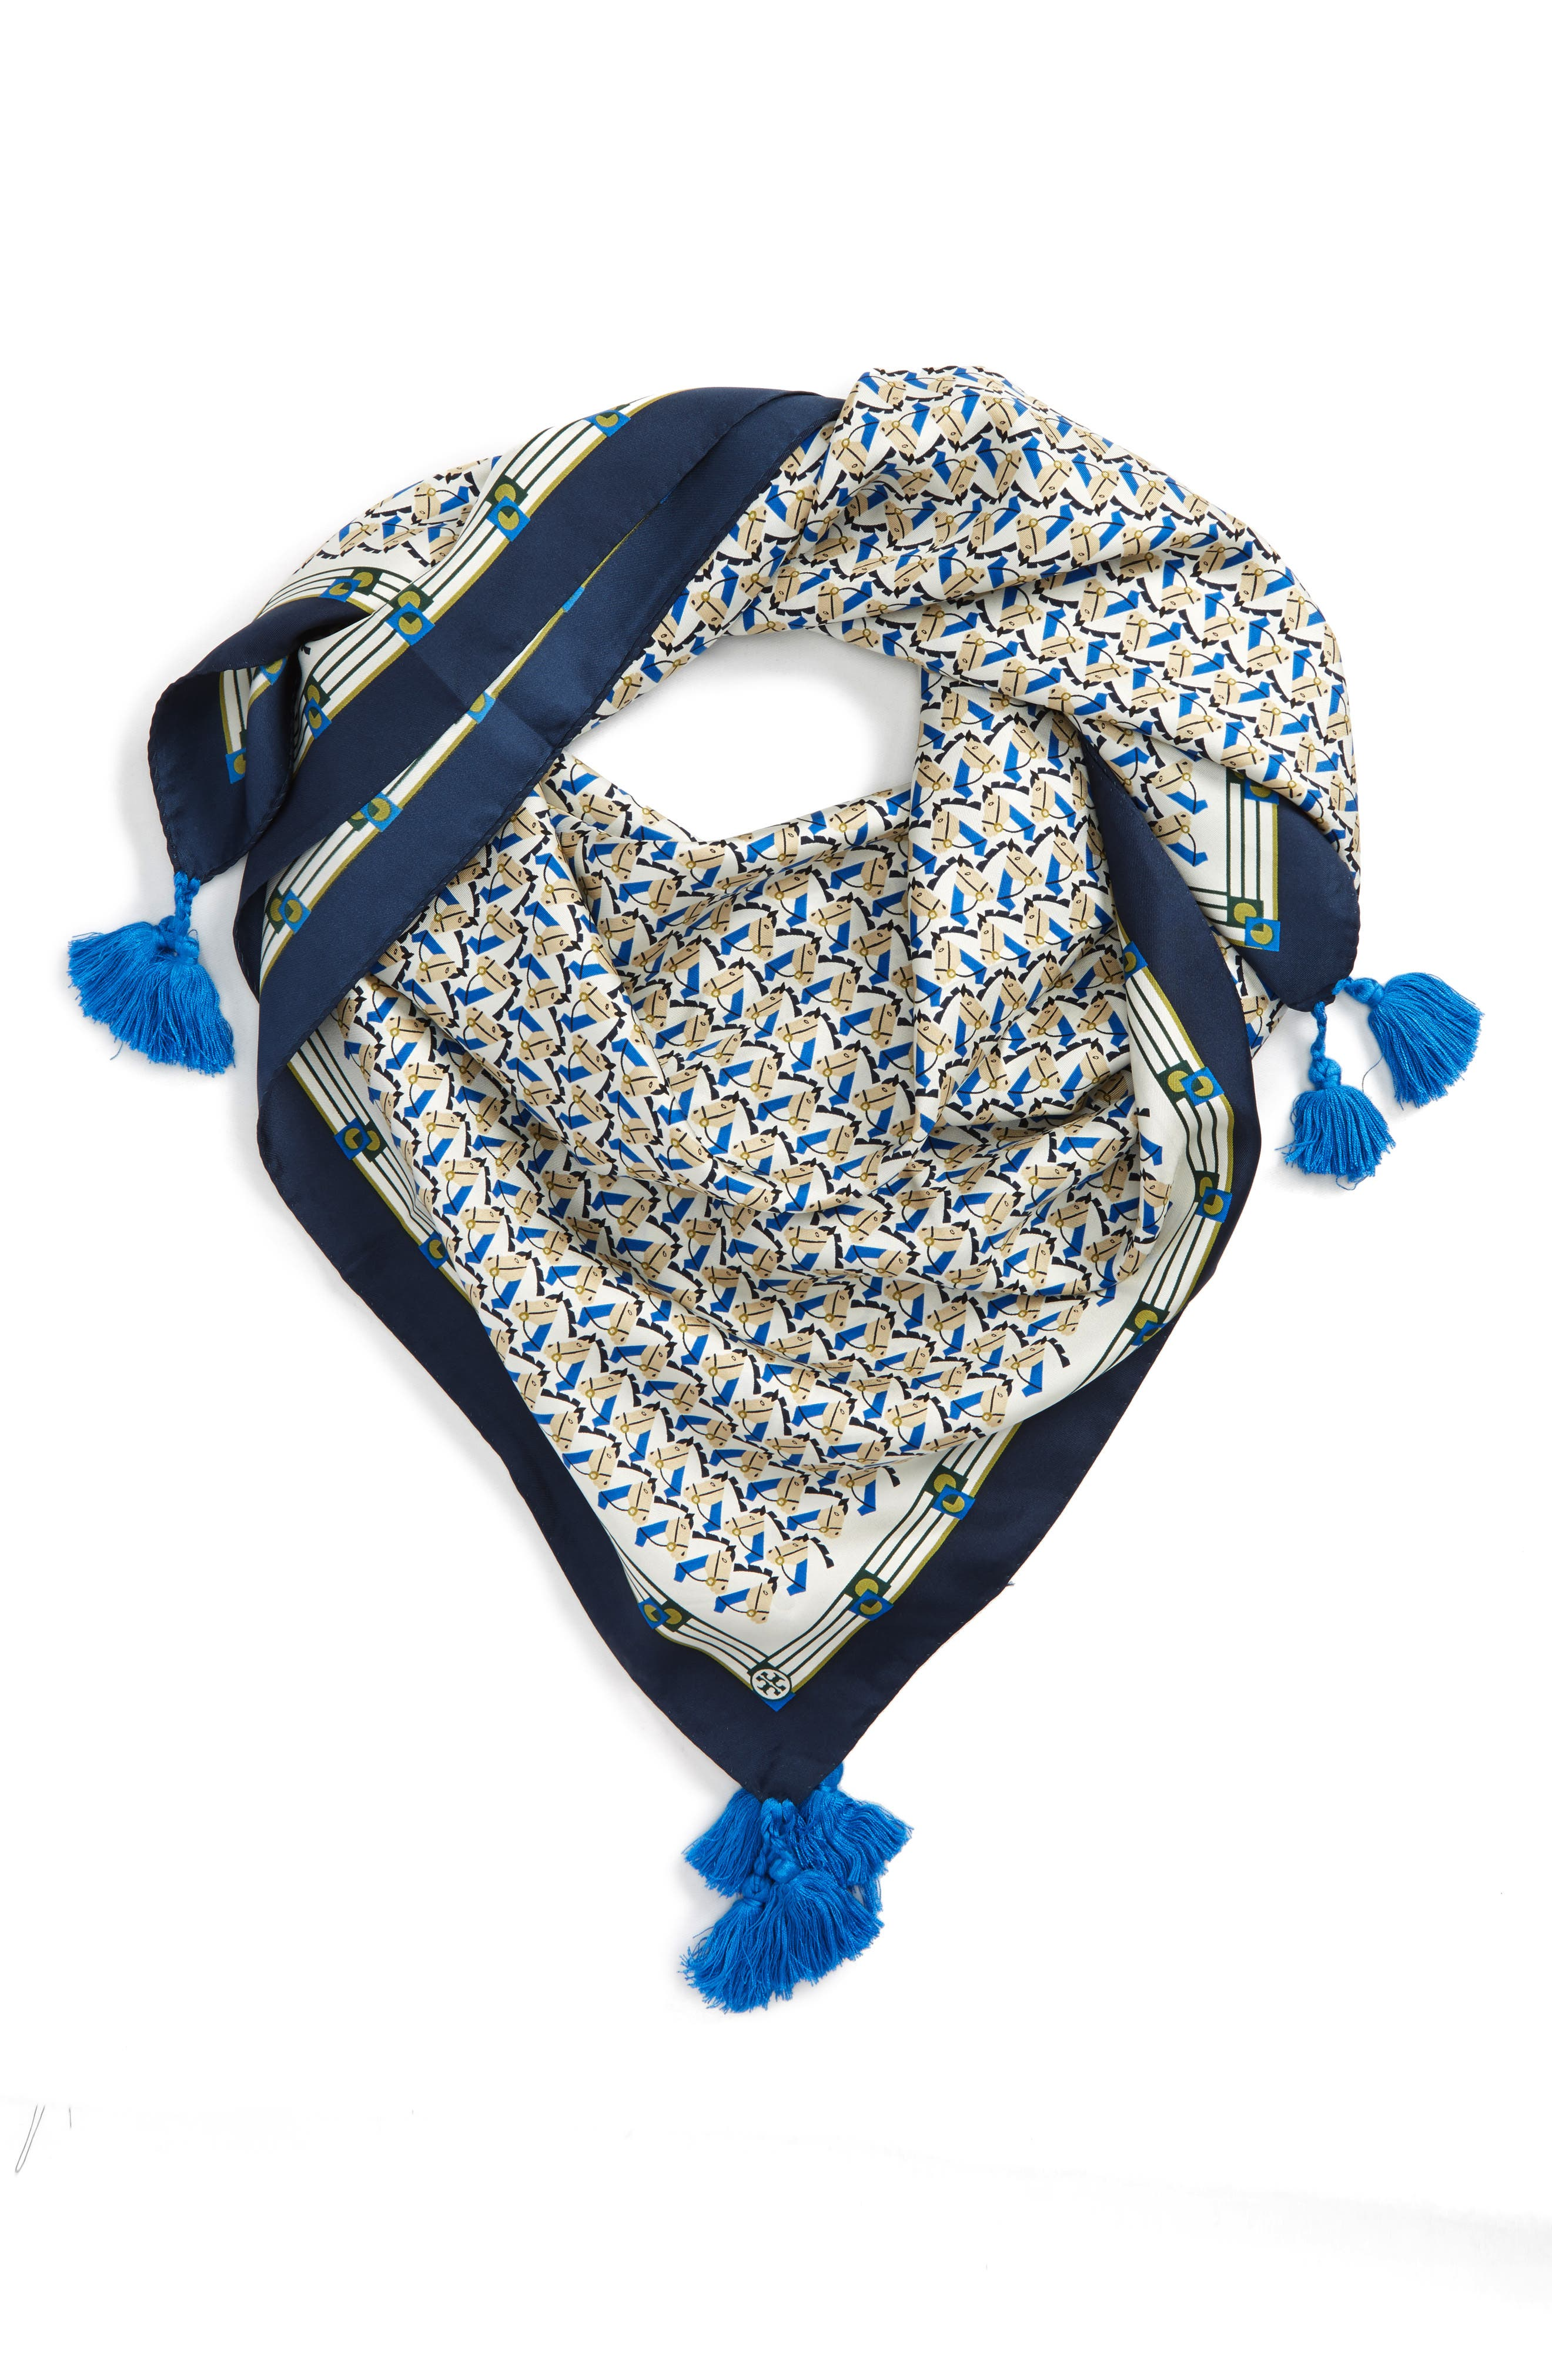 Stallion Silk Square Scarf with Tassels,                             Main thumbnail 2, color,